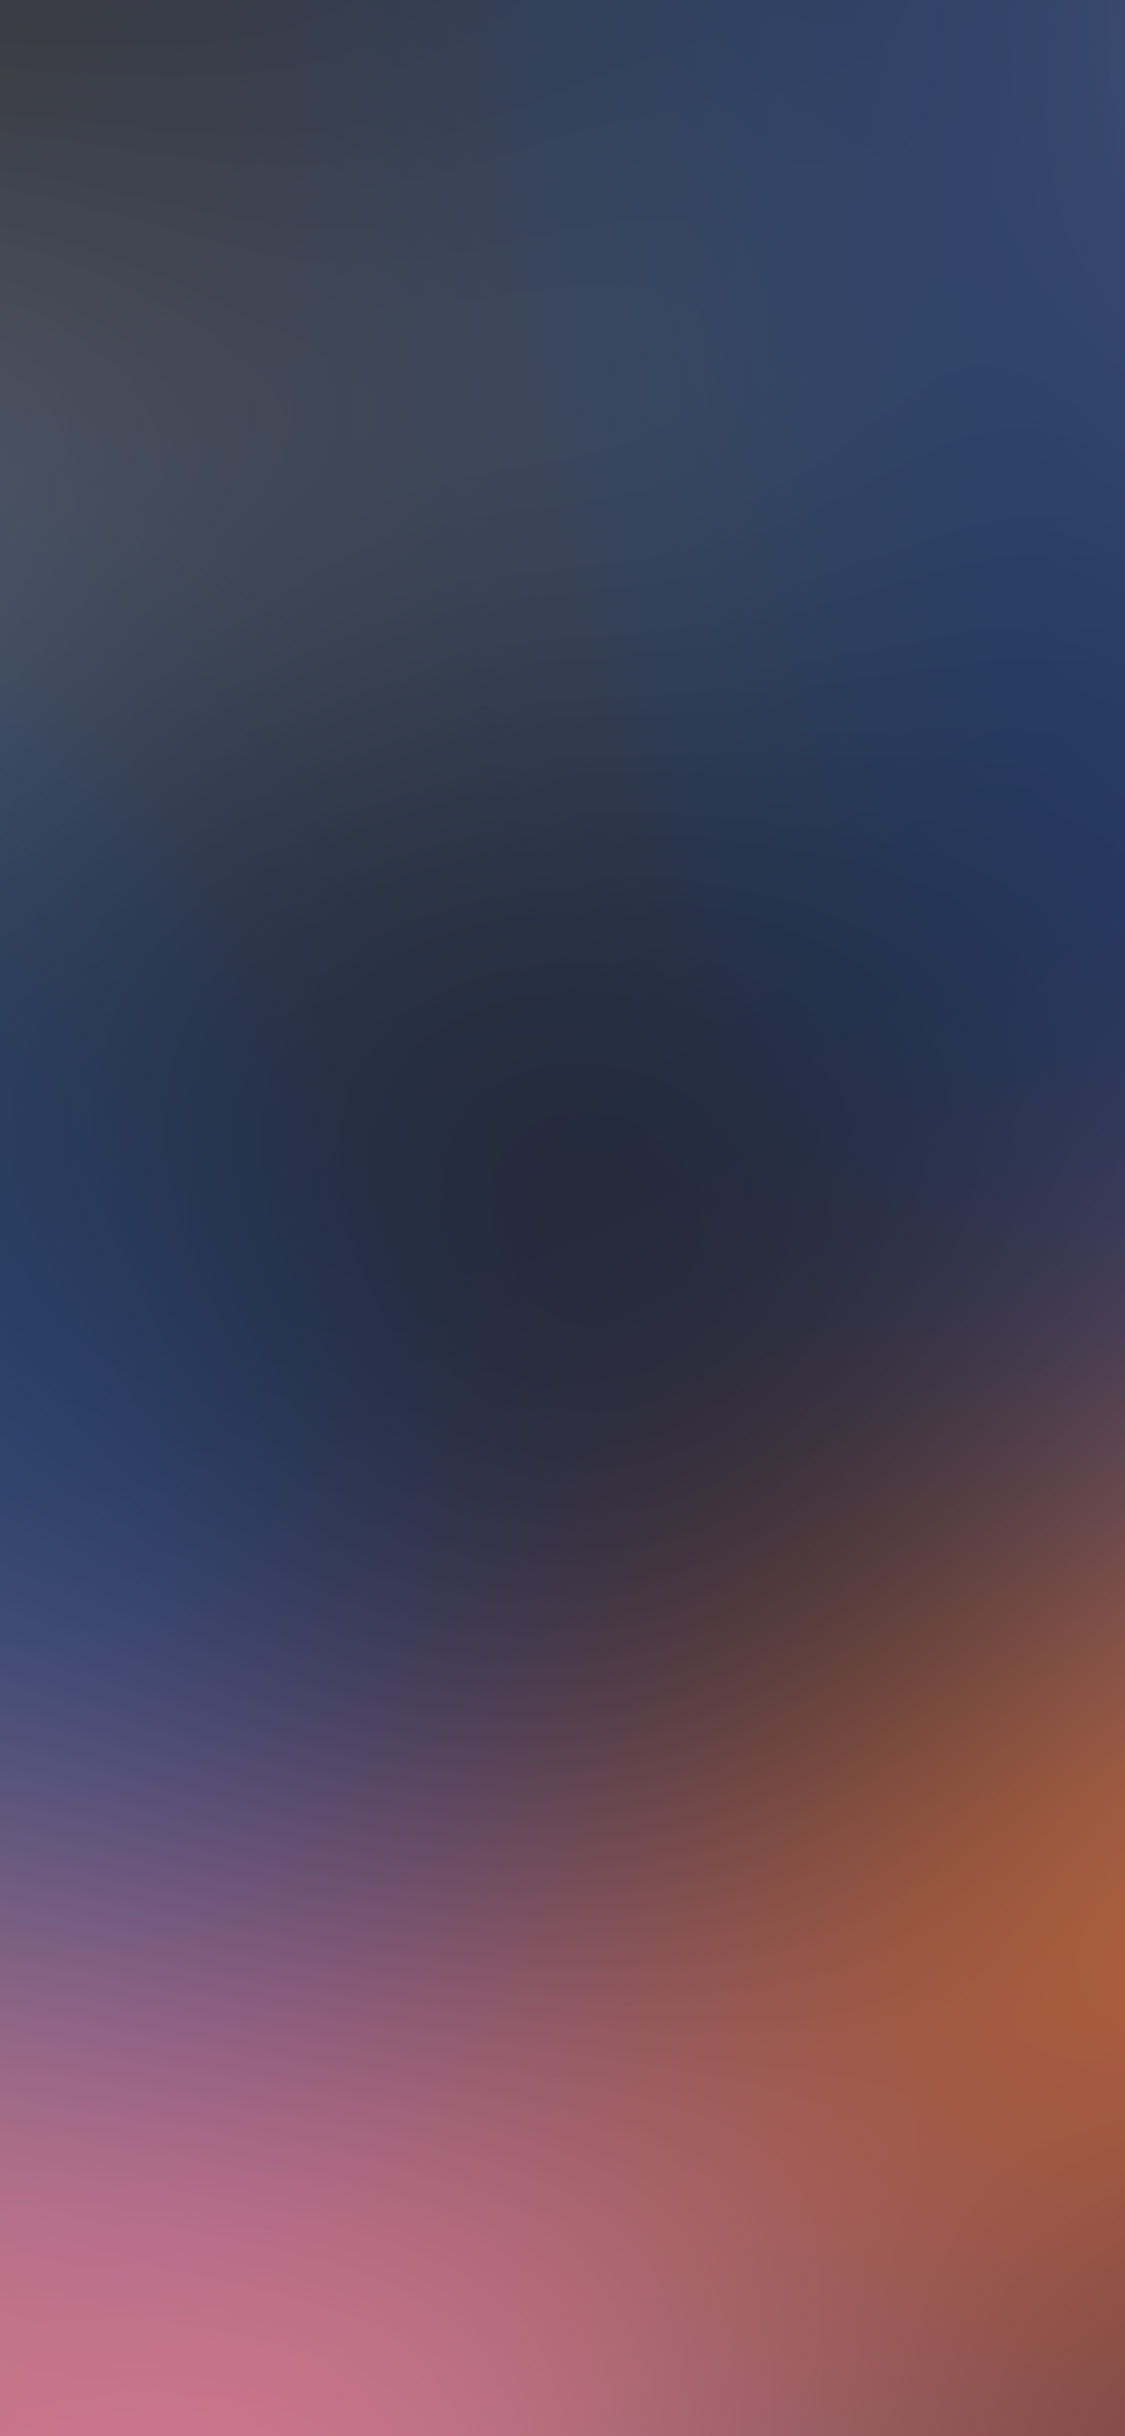 iPhonexpapers.com-Apple-iPhone-wallpaper-sm70-blue-abstract-blur-gradation